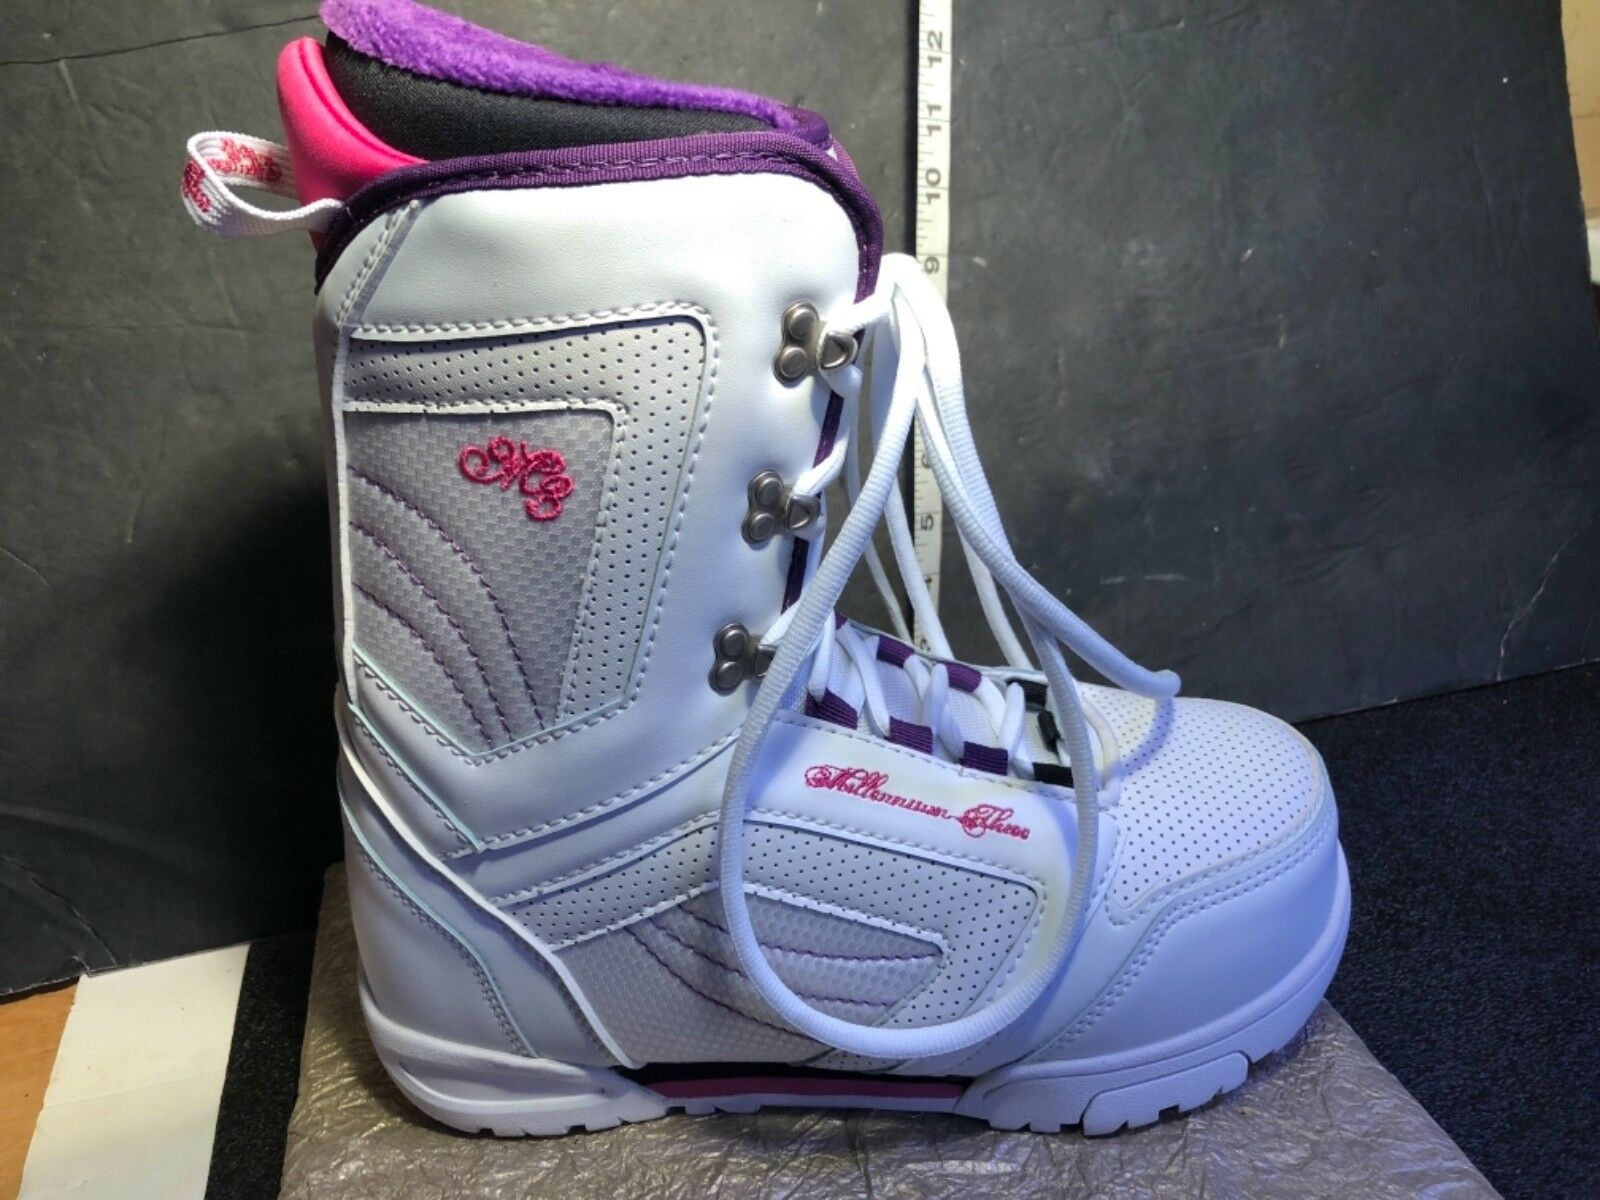 WOMENS MILLENNIUM THREE Cosmo SNOWBOARD BOOTS Brand NEW Box SIZE  9 Pink White  store sale outlet